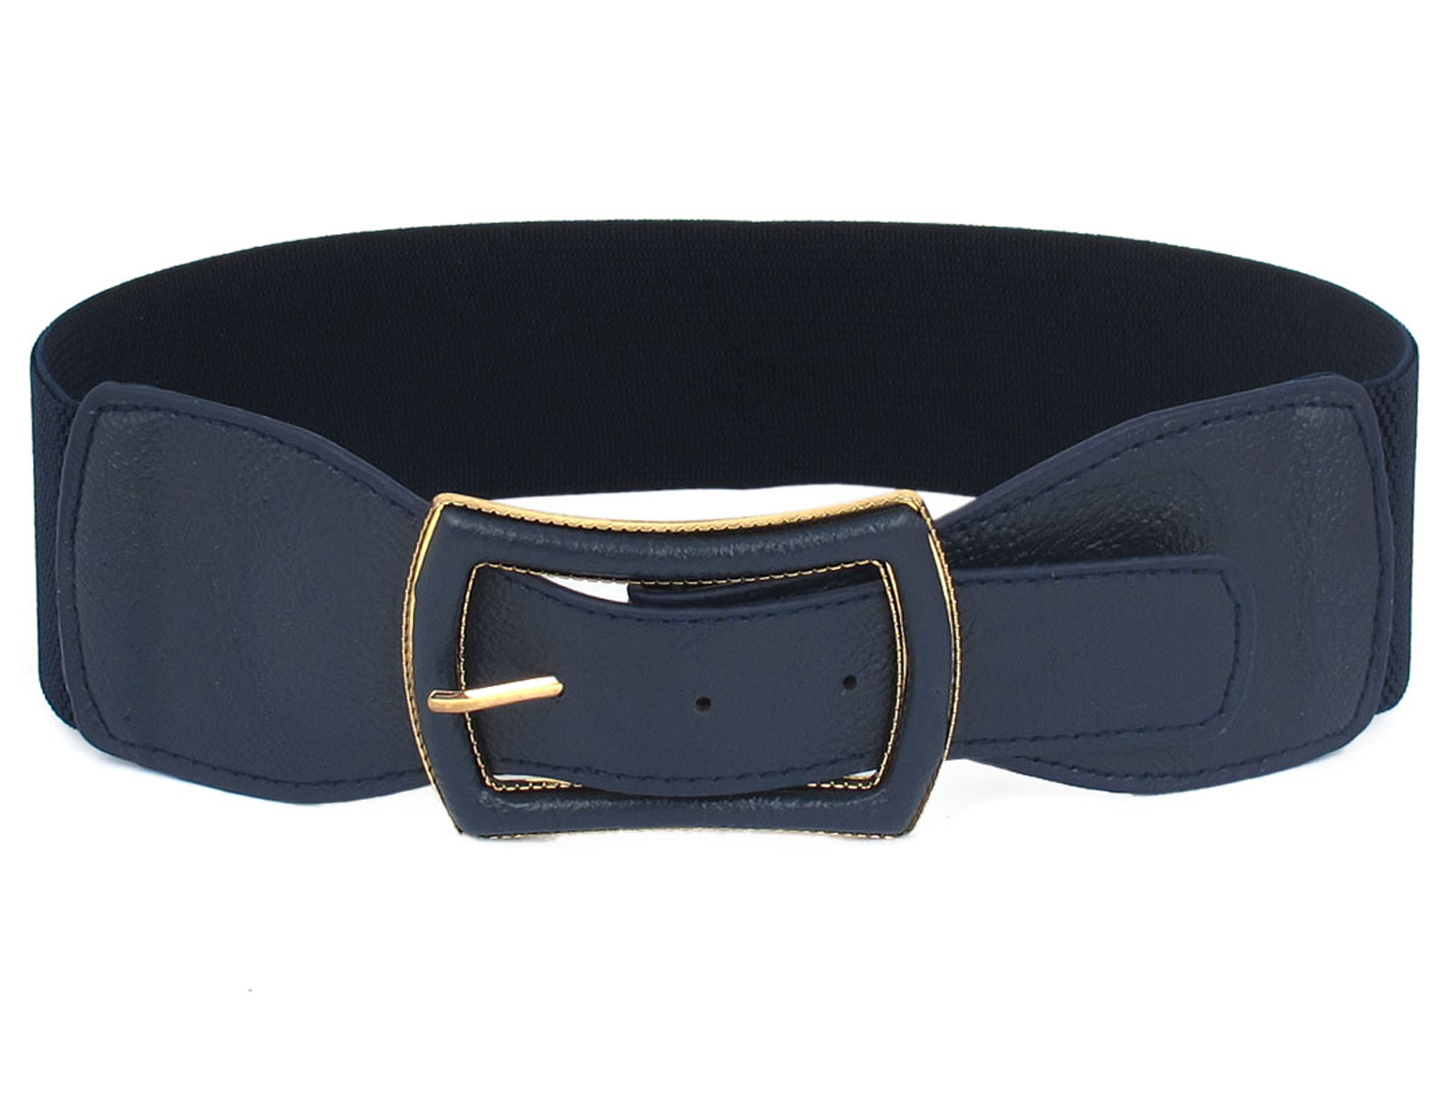 Lady Metal Single Pin Buckle Stretchy Cinch Band Waist Belt Dark Blue